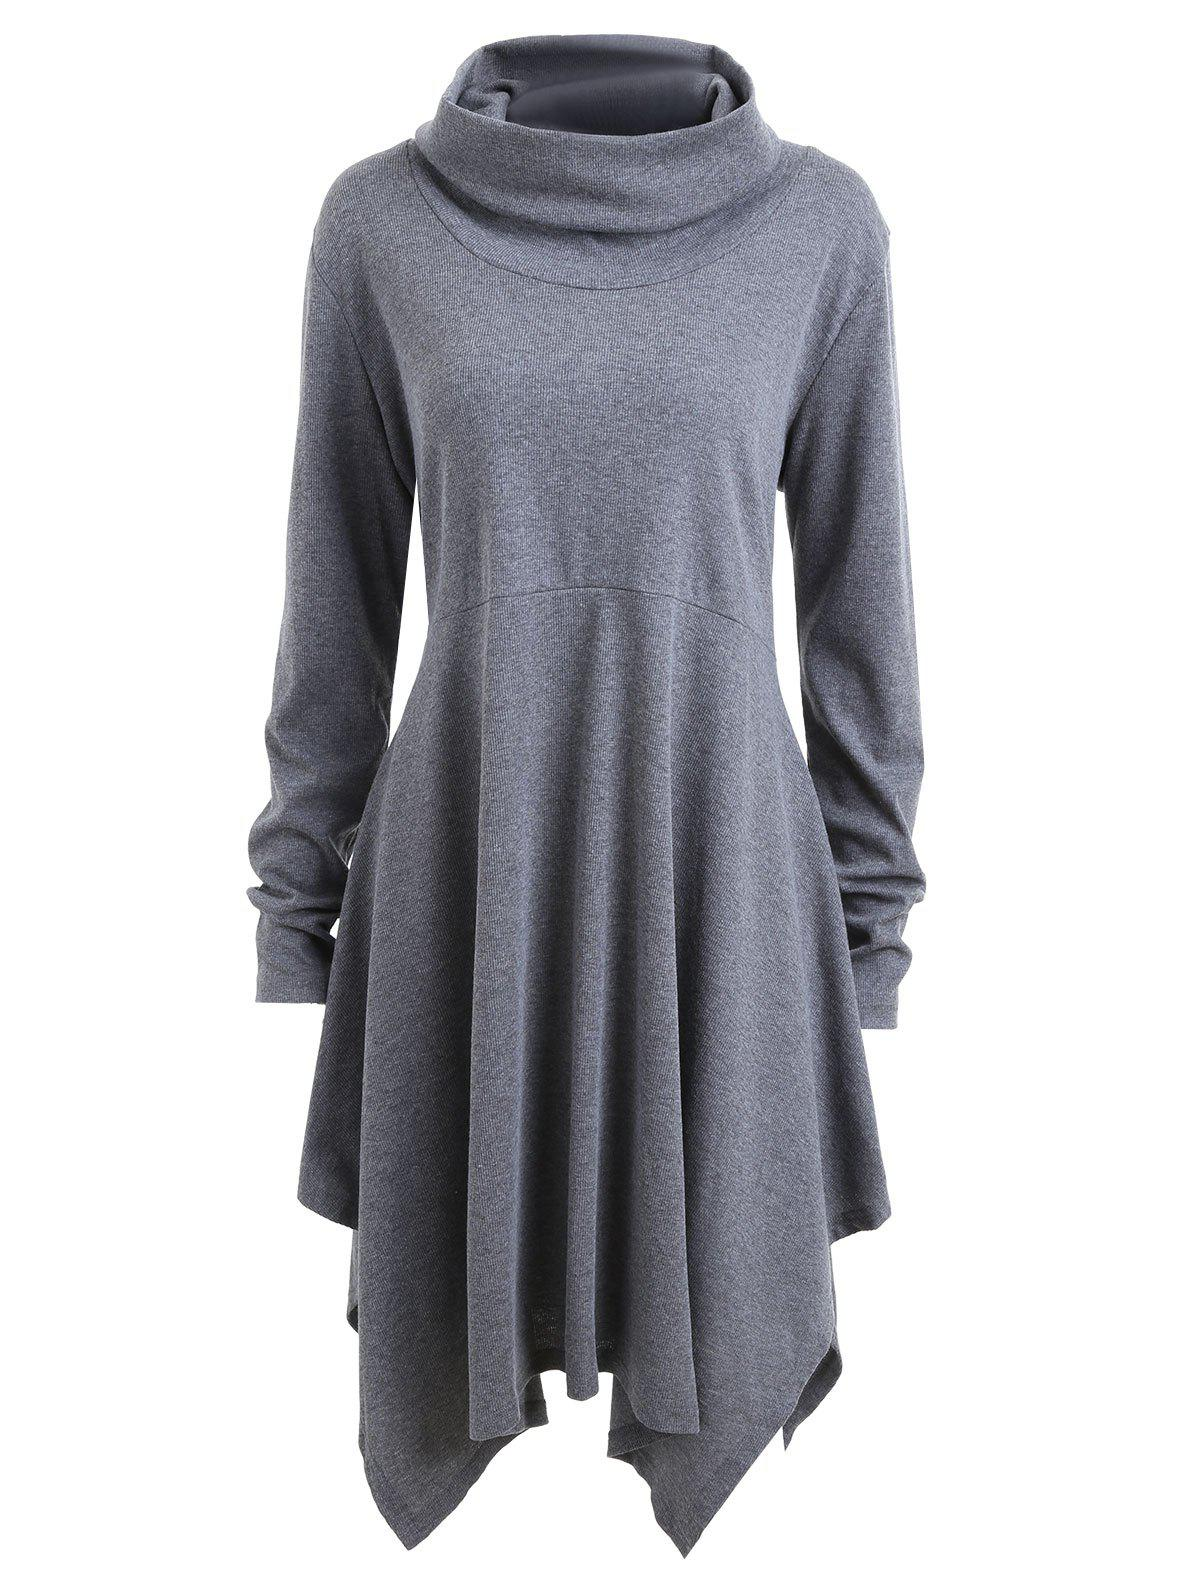 Plus Size Long Sleeve Funnel Neck Swing DressWOMEN<br><br>Size: 3XL; Color: GRAY; Style: Casual; Material: Polyester; Silhouette: A-Line; Dresses Length: Knee-Length; Neckline: Funnel Collar; Sleeve Length: Long Sleeves; Pattern Type: Solid,Solid Color; With Belt: No; Season: Fall,Winter; Weight: 0.5000kg; Package Contents: 1 x Dress;